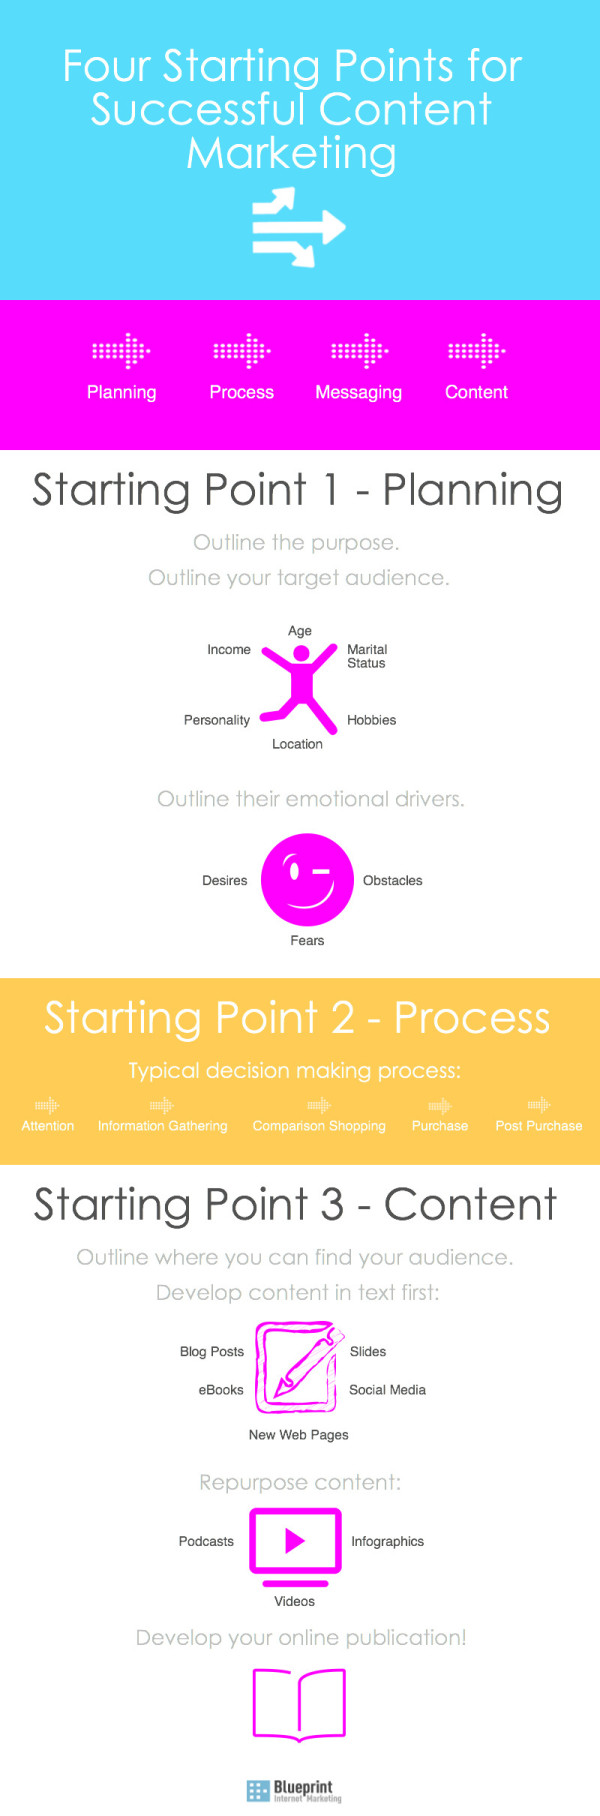 Four starting points for successful content marketing strategy as a digital marketing agency we have put together a quick infographic as a visual guide as well as an overview of the four starting points of a malvernweather Choice Image